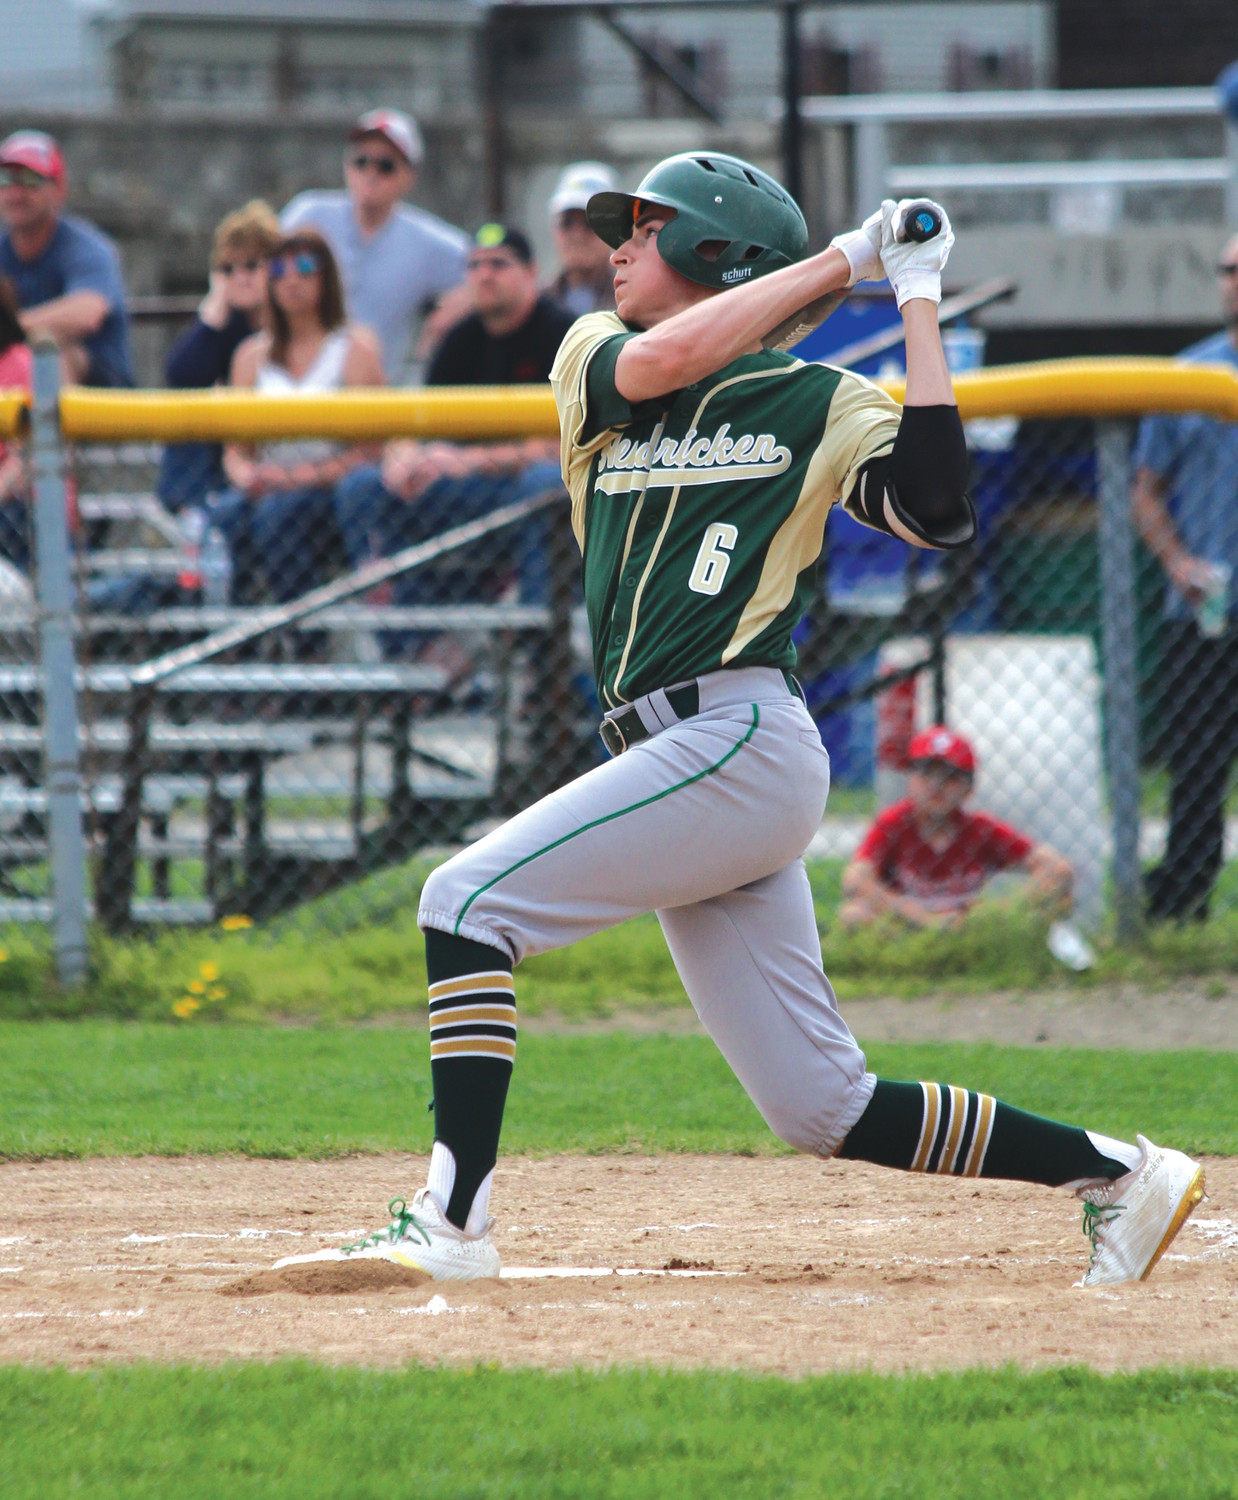 TO THE NEXT LEVEL: Bishop Hendricken's Kevin Gower hits during the 2018 season.